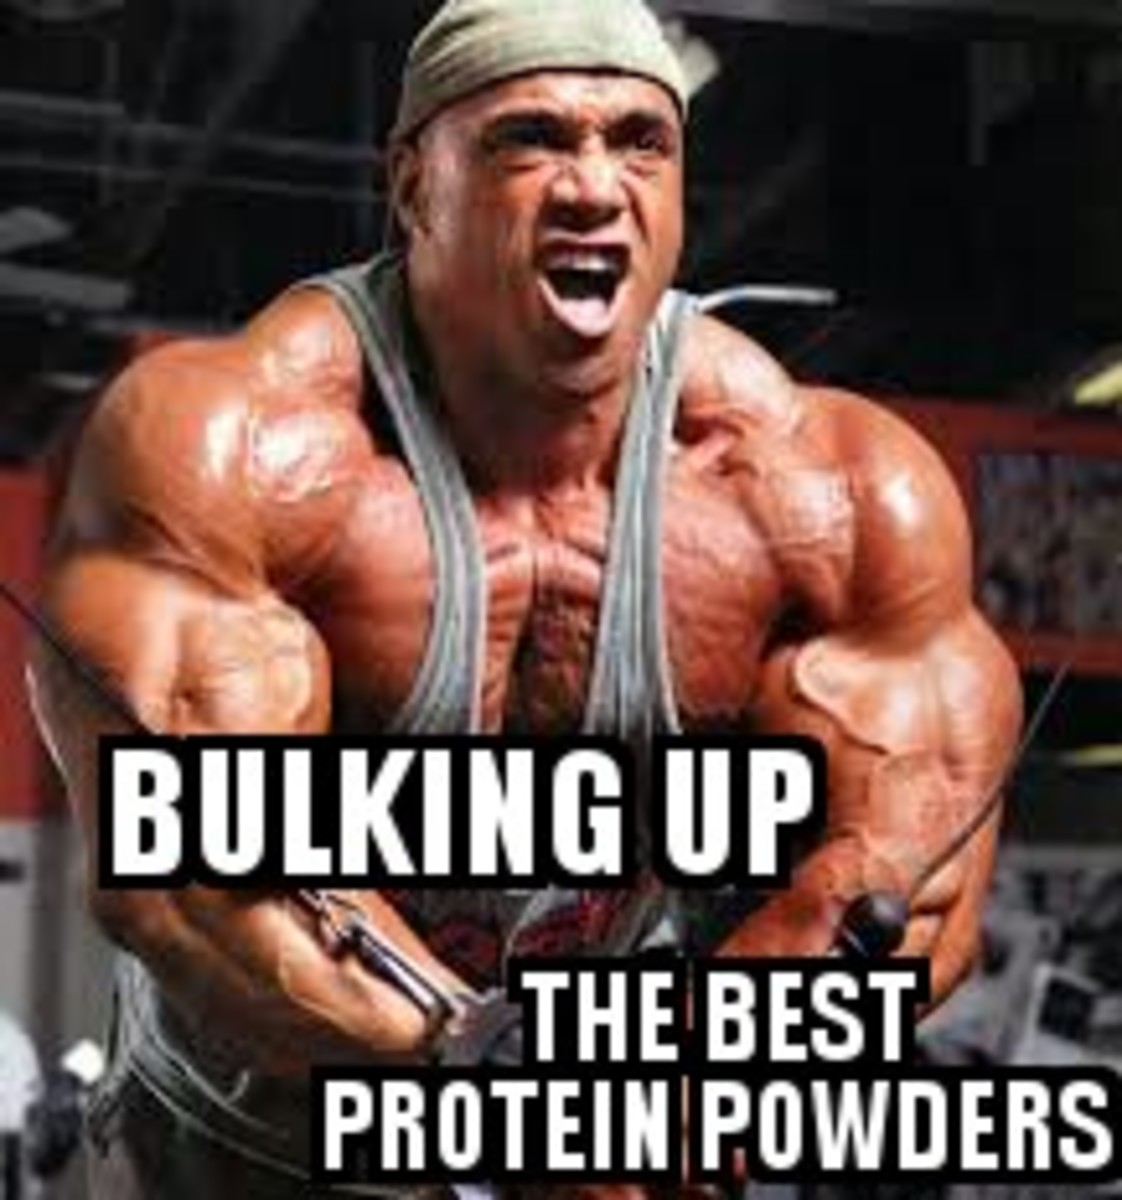 Buying the best protein powder can be complicated, but with a little information the answer is obvious.